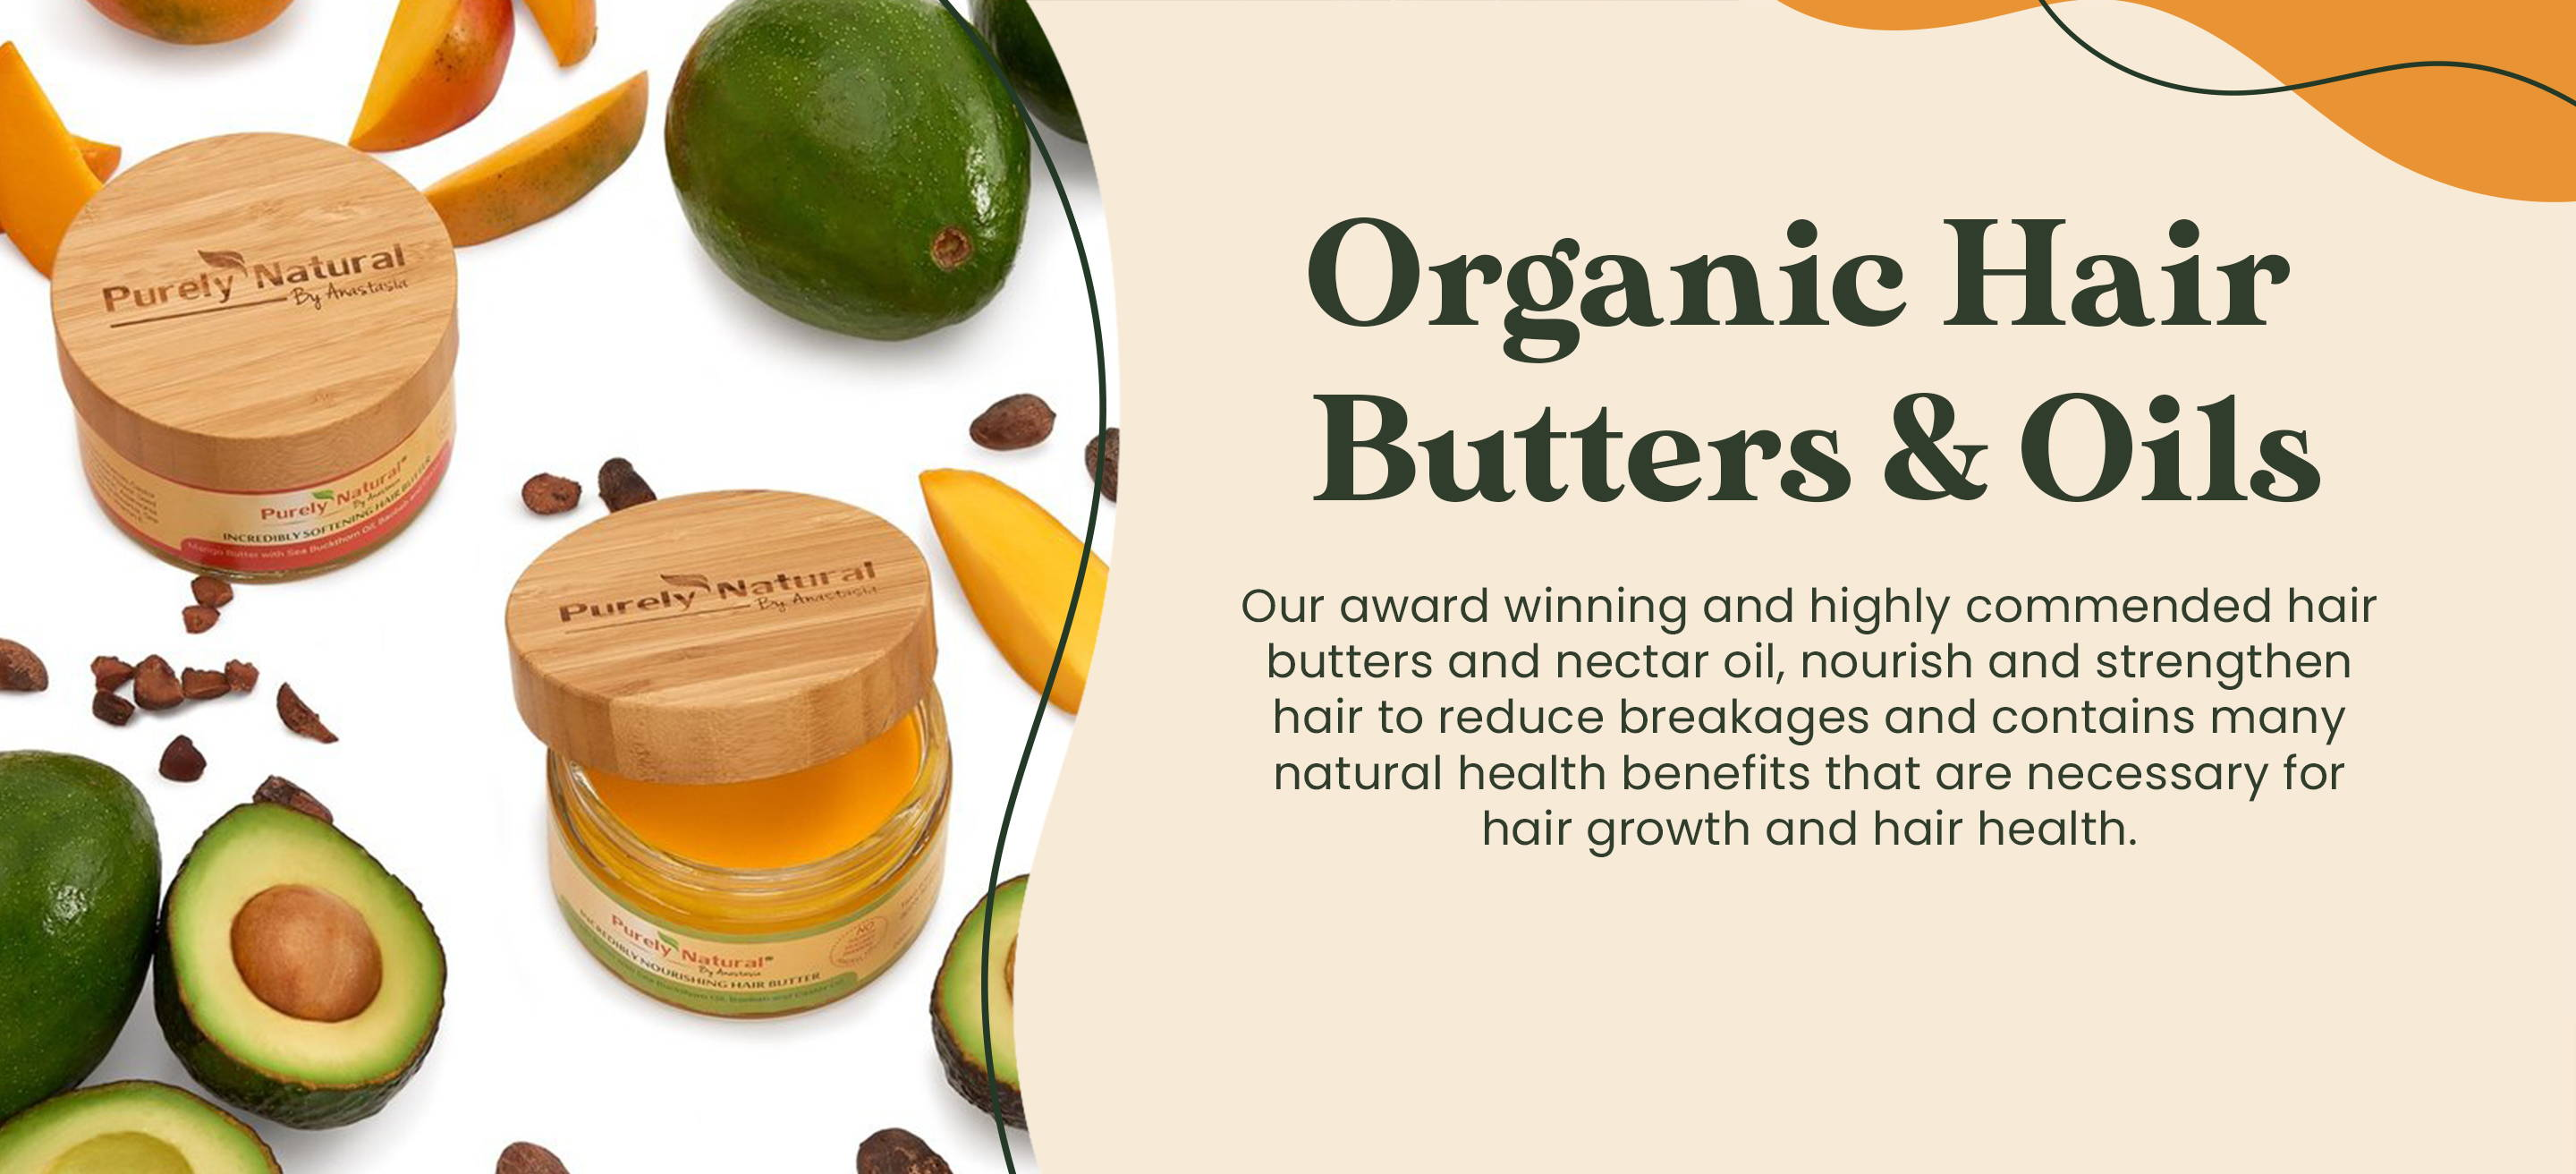 Organic Hair Butters and Oils from Purely Natural by Anastasia